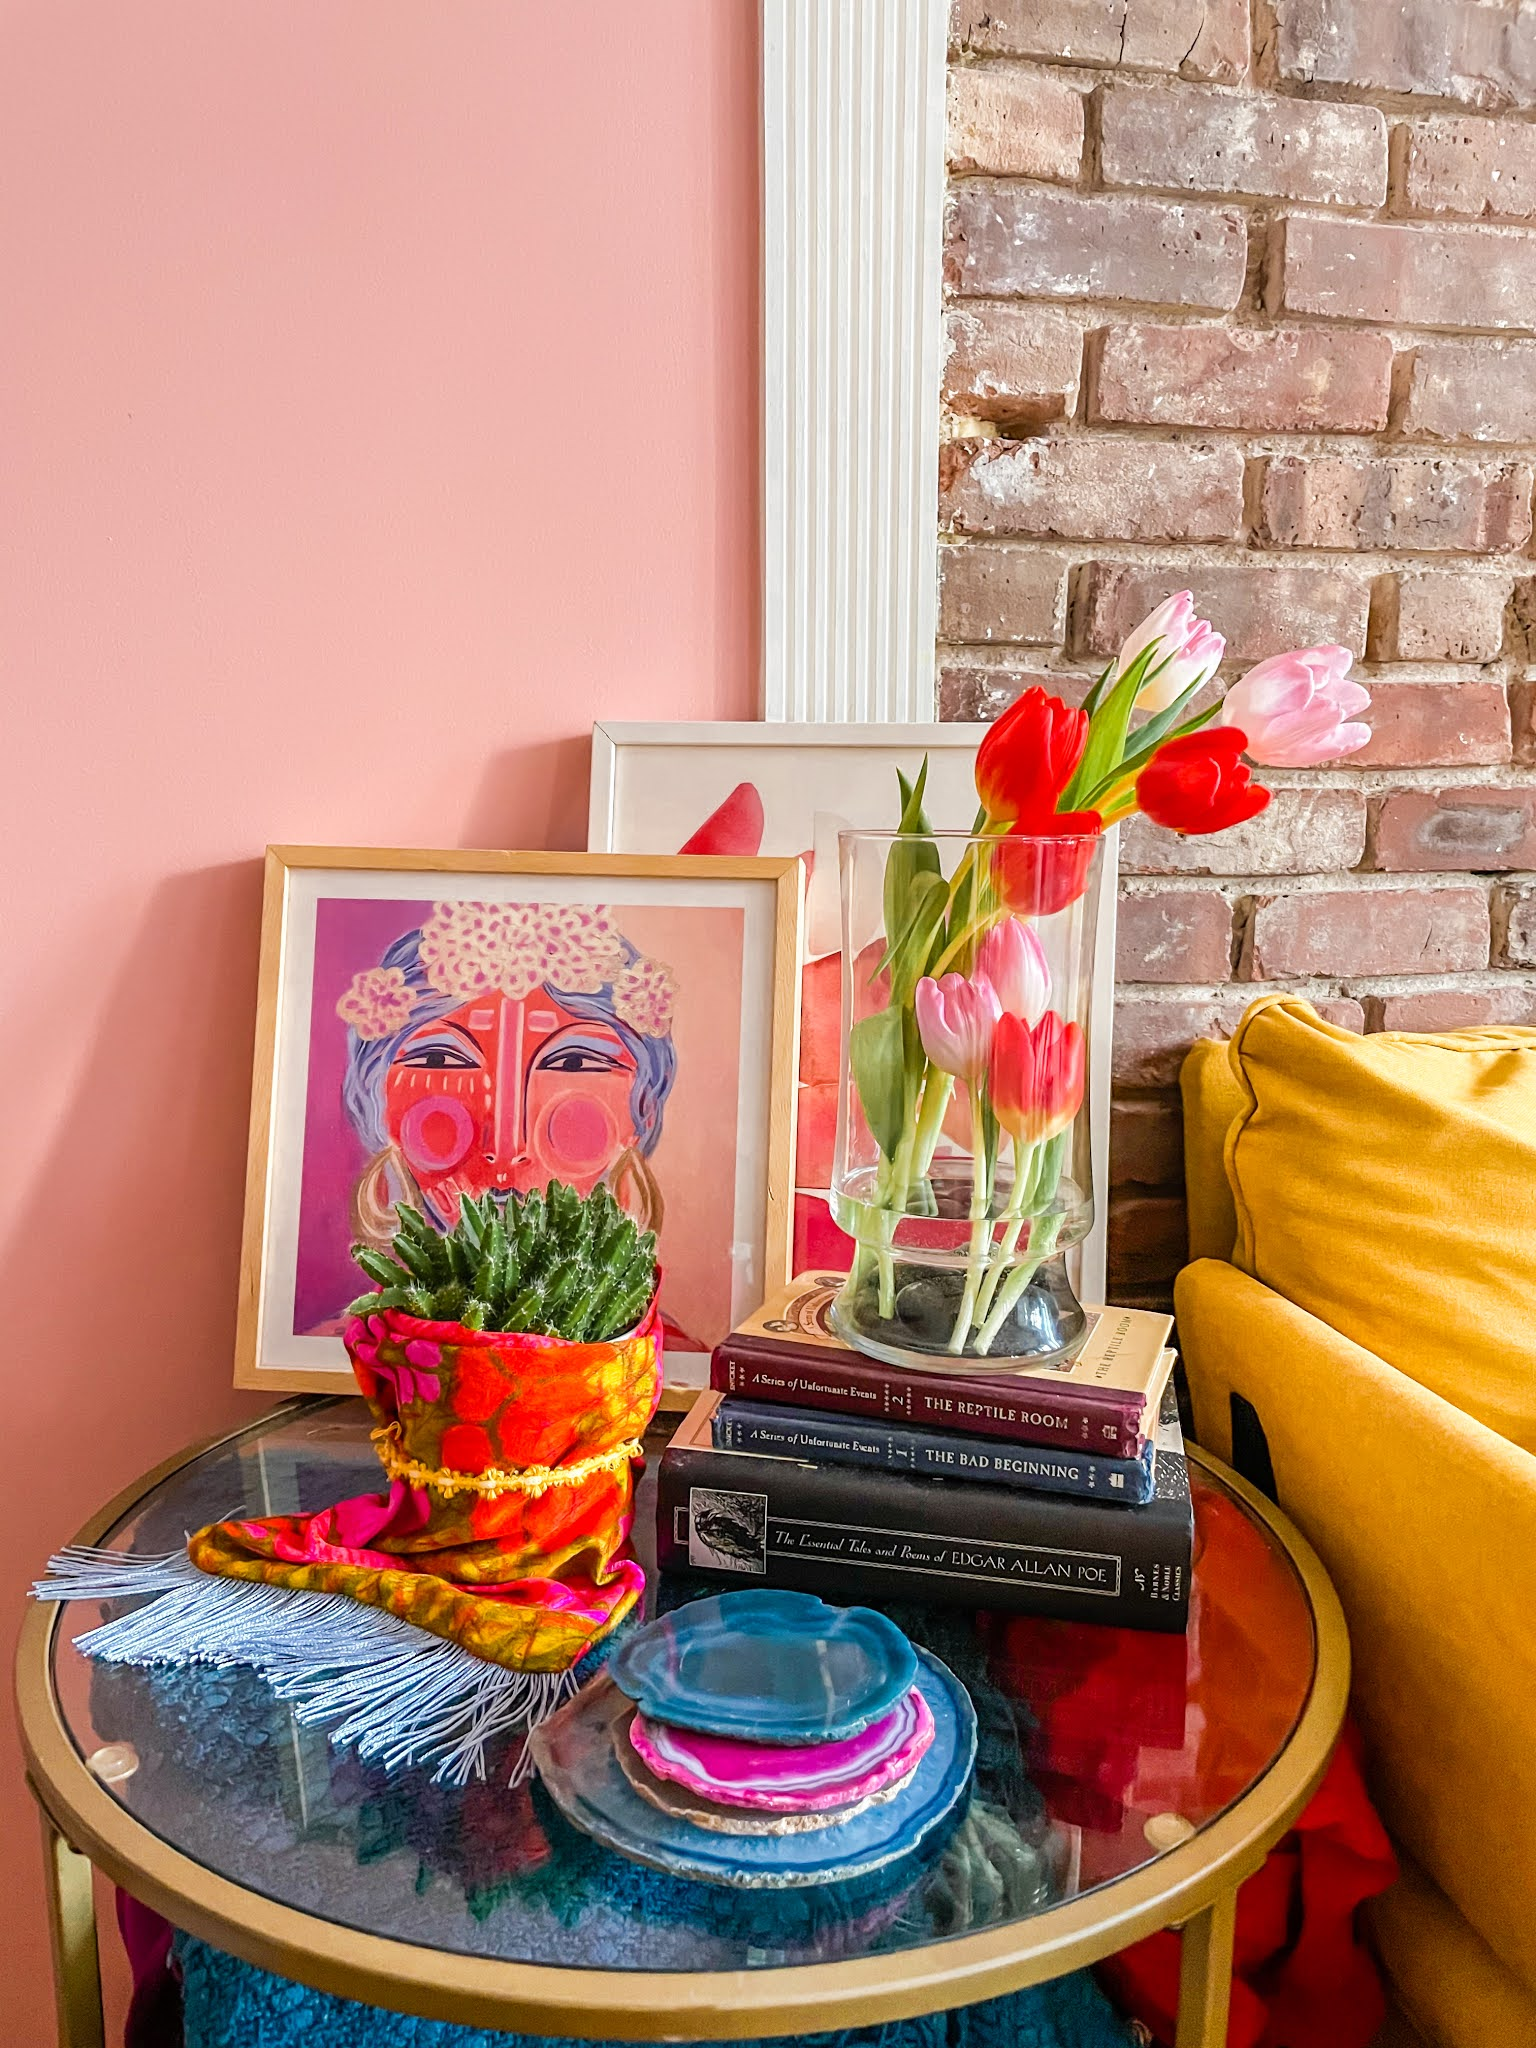 Tulips // Flower Arrangement Ideas // Tulip Arrangement Ideas // Simple Tulip Arrangements // Tulips Bouquets // Flower Arranging // Flowers Decor // Flower Styling // Pink and Yellow Decor // End Table Styling // Colorful decor ideas // side table styling // side table styling inspiration